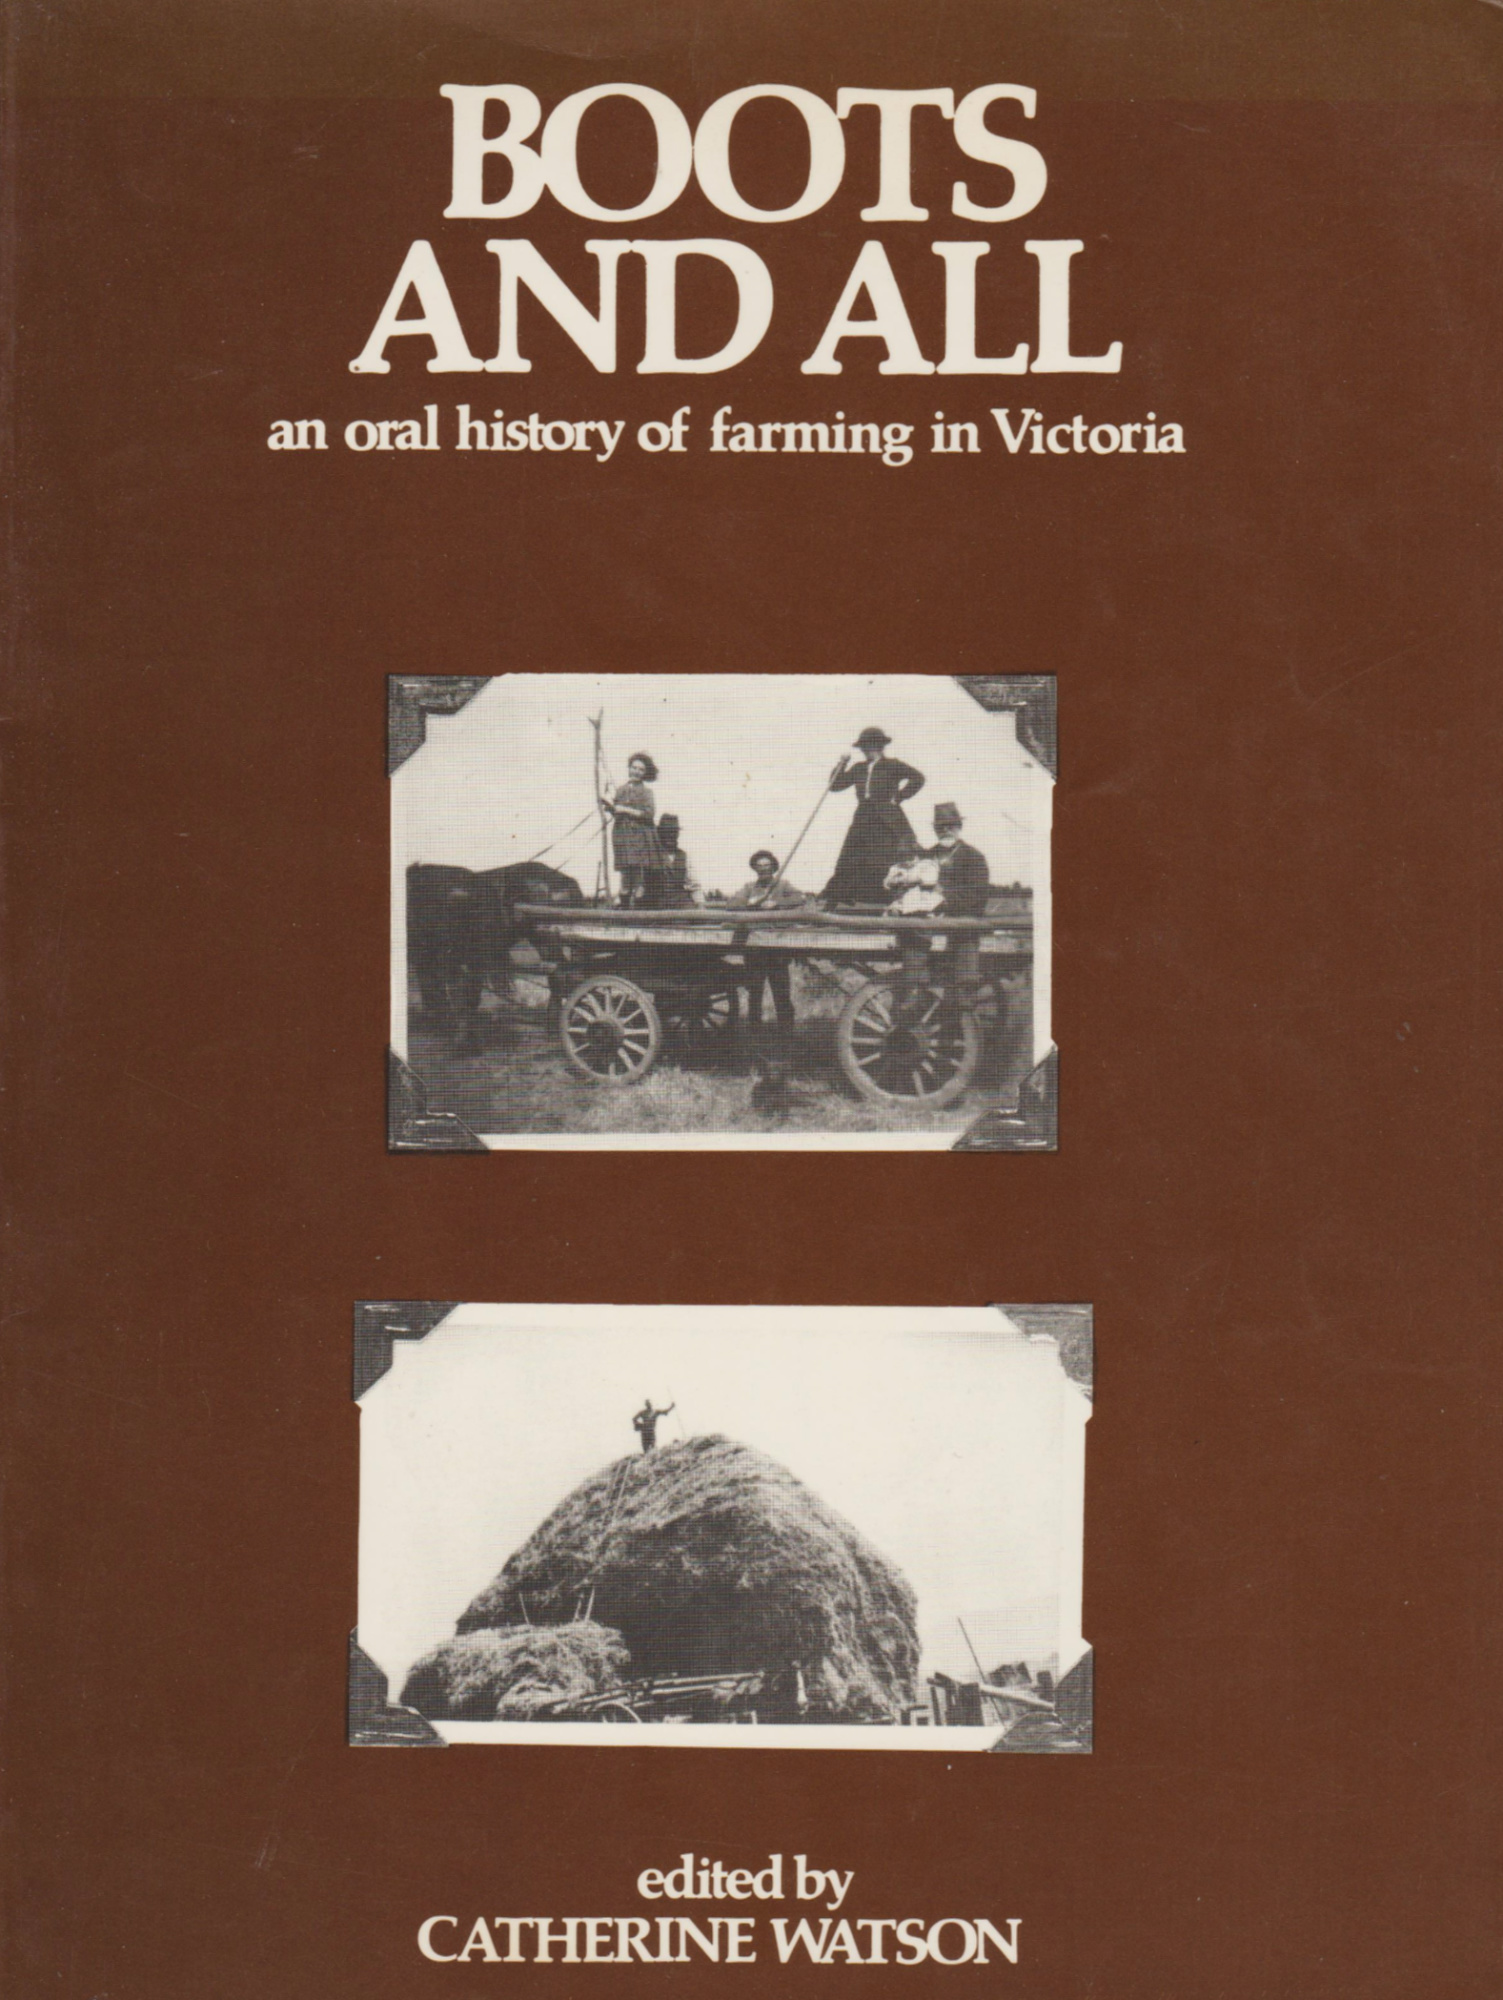 Image for BOOTS AND ALL: An Oral History of Farming in Victoria